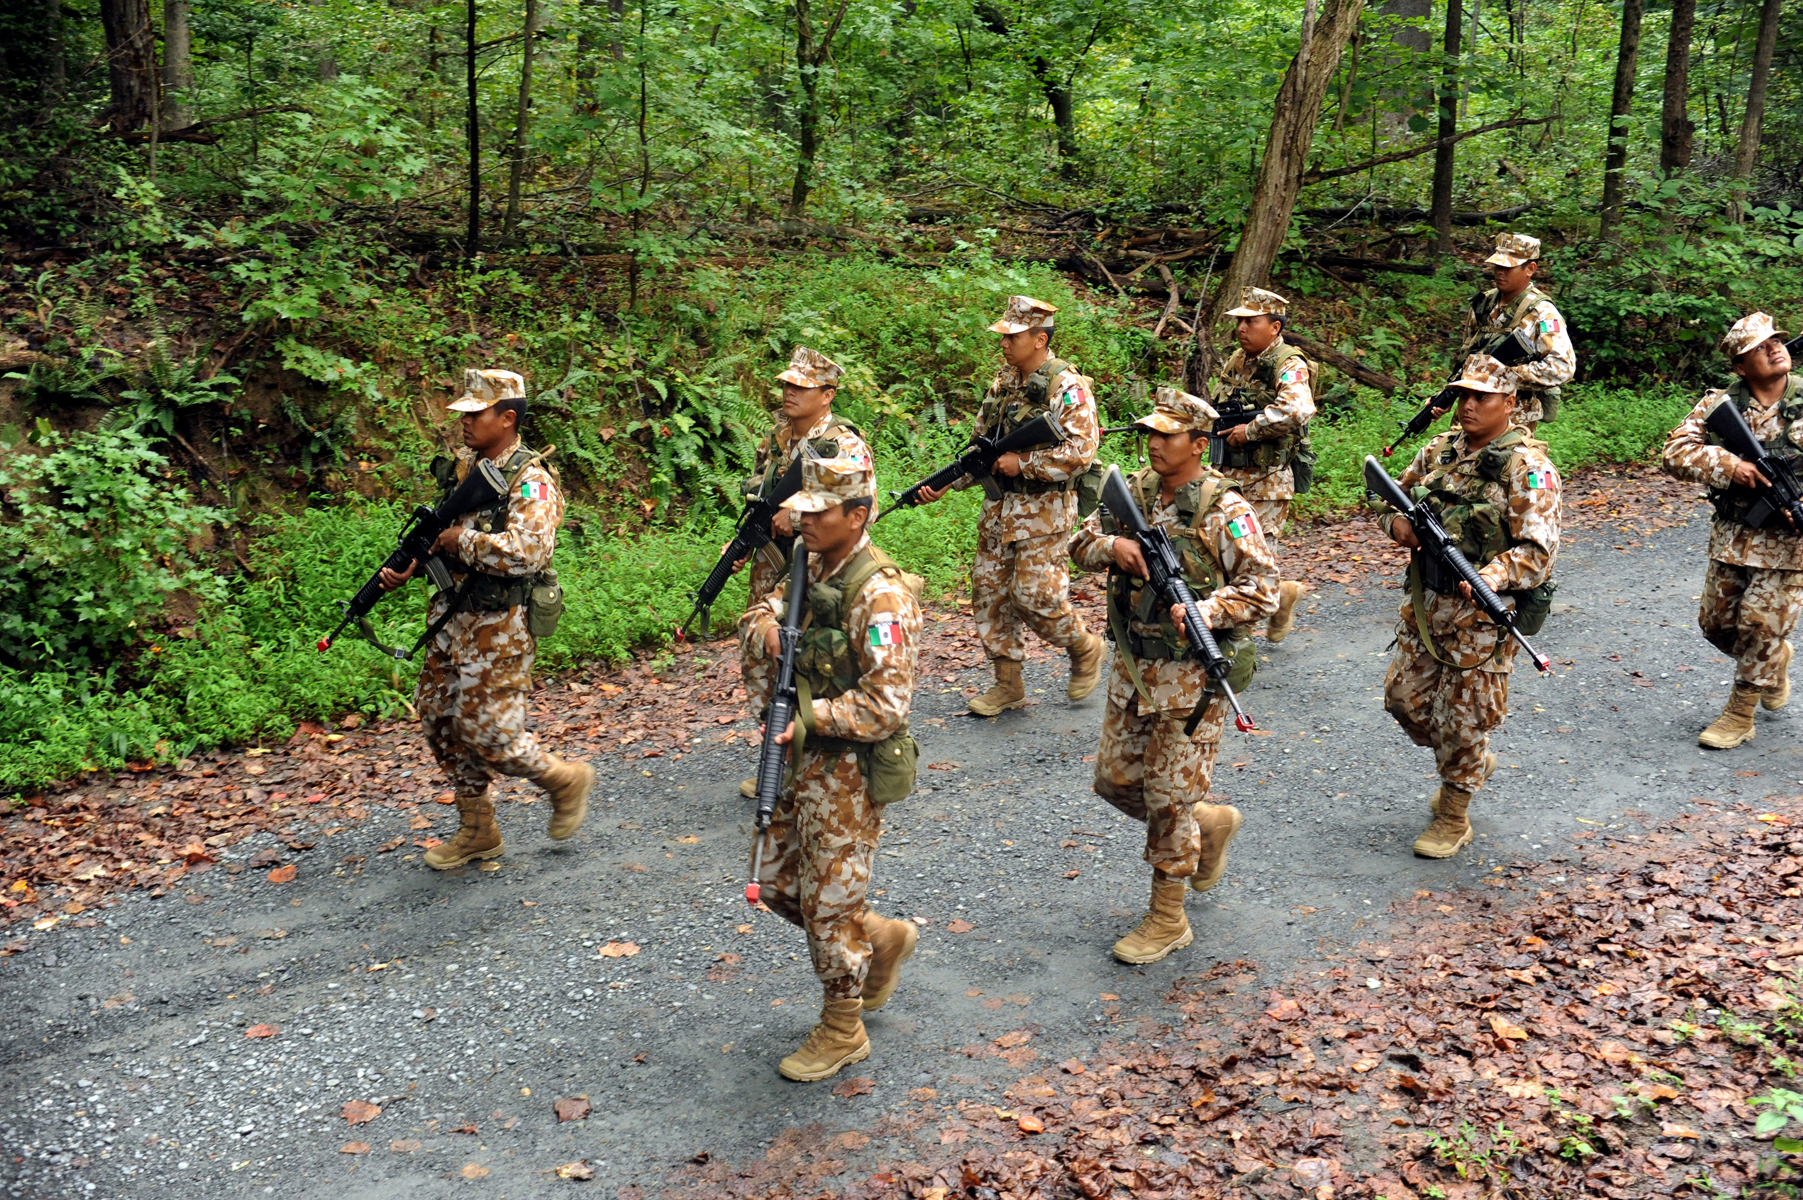 Mexican Naval Infantry soldiers on patrol during an exercise at OCS in Quantico, Virginia. The orange tips at the end of each rifle barrel are blank-firing adaptors.